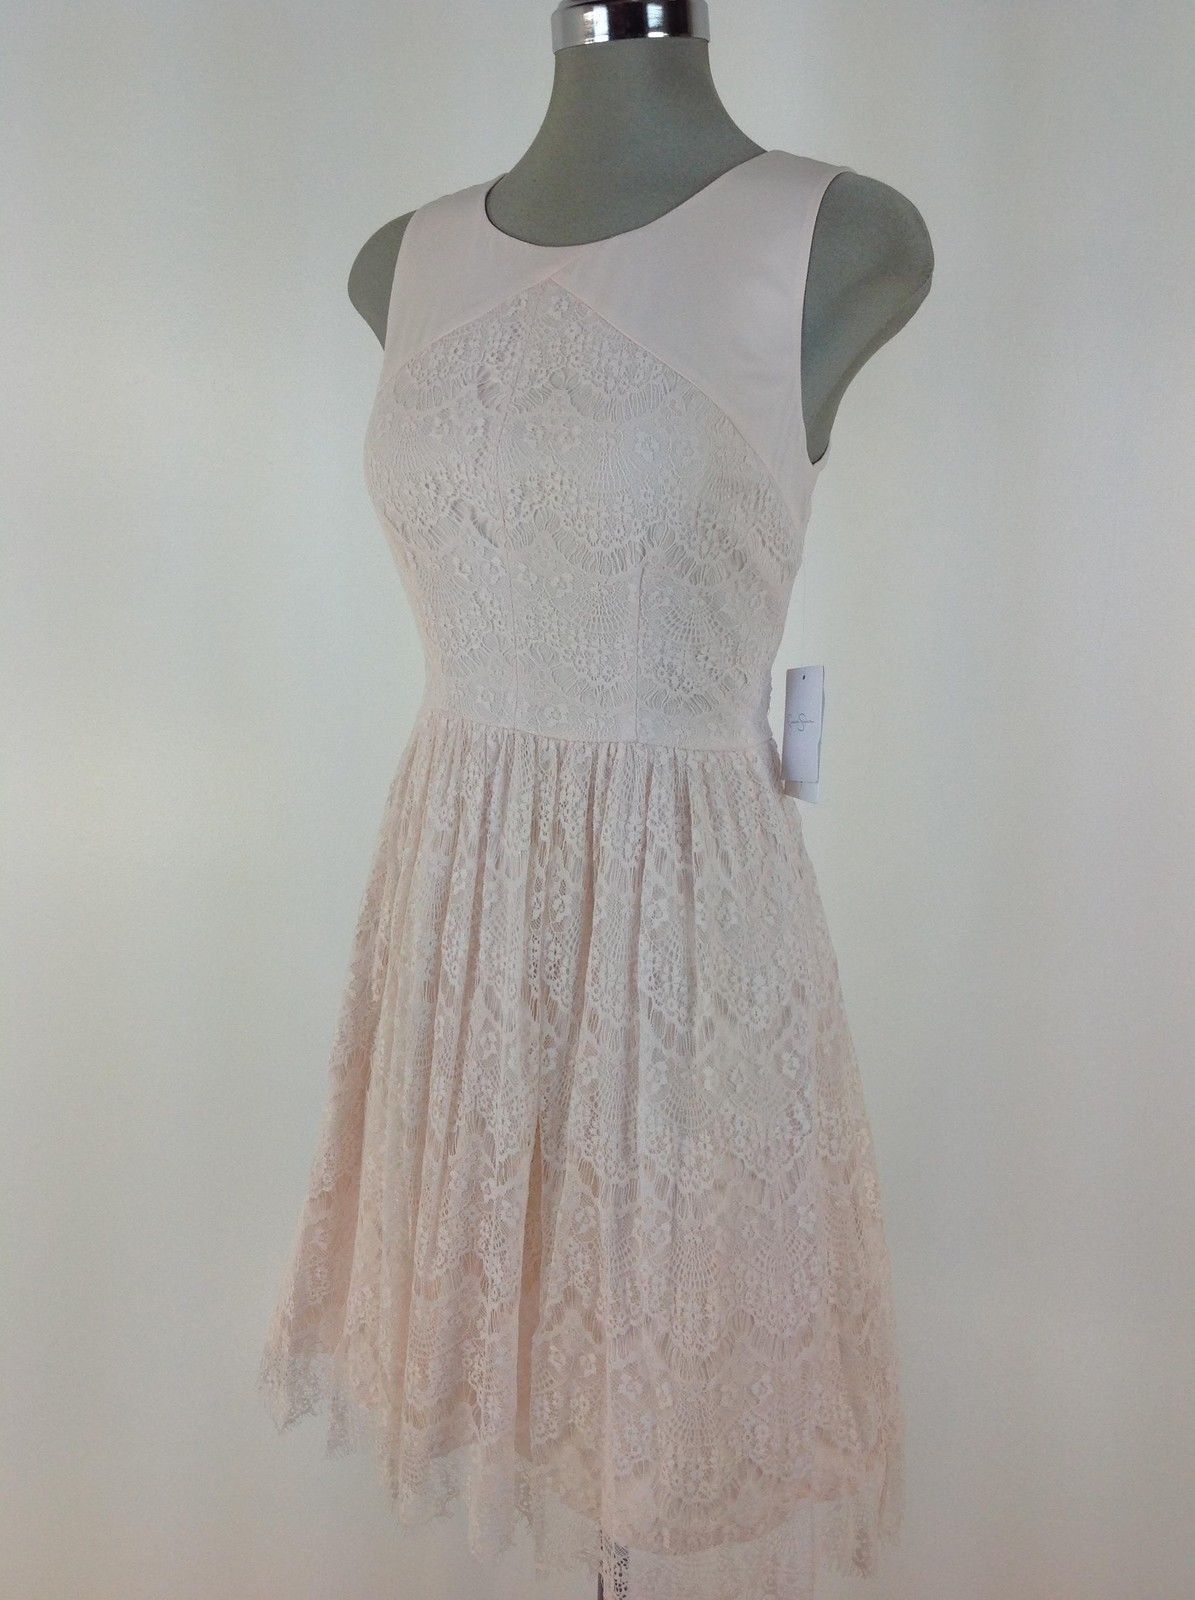 Jessica simpson wt pink lace dress with peek a boo back exposed gold